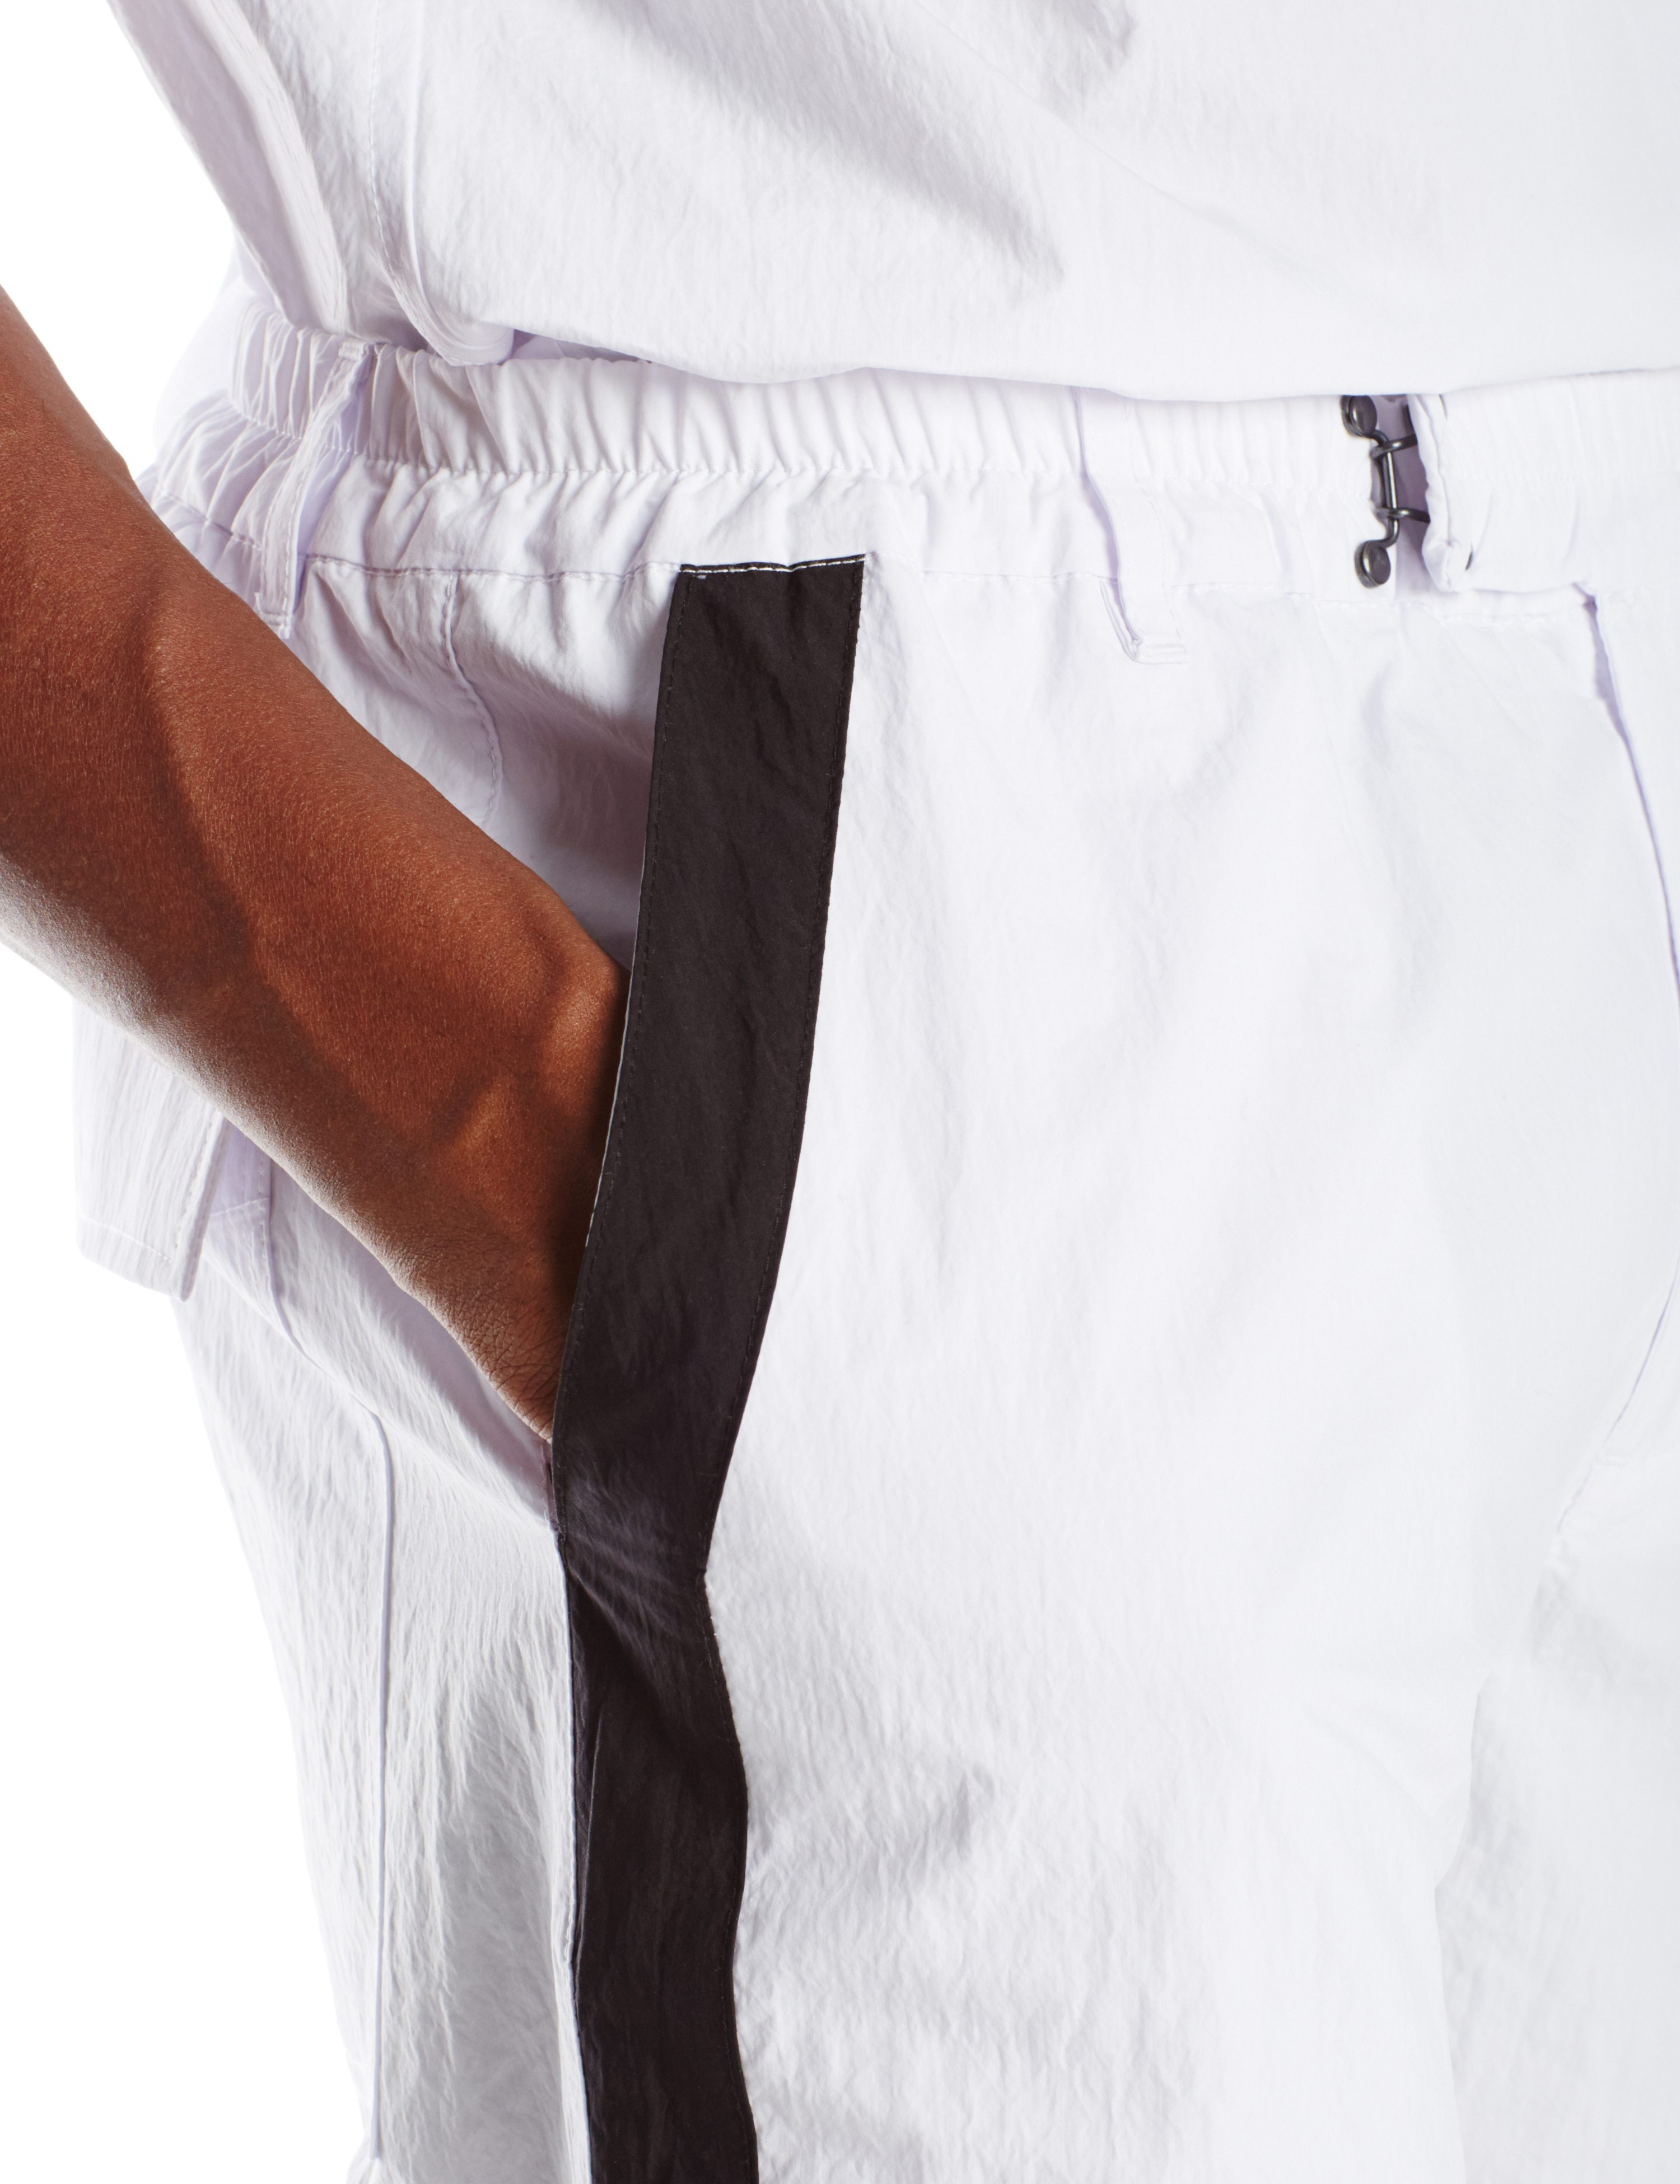 DETAIL01-EPSILON SHORT WHITE BLACK TRIM.0127